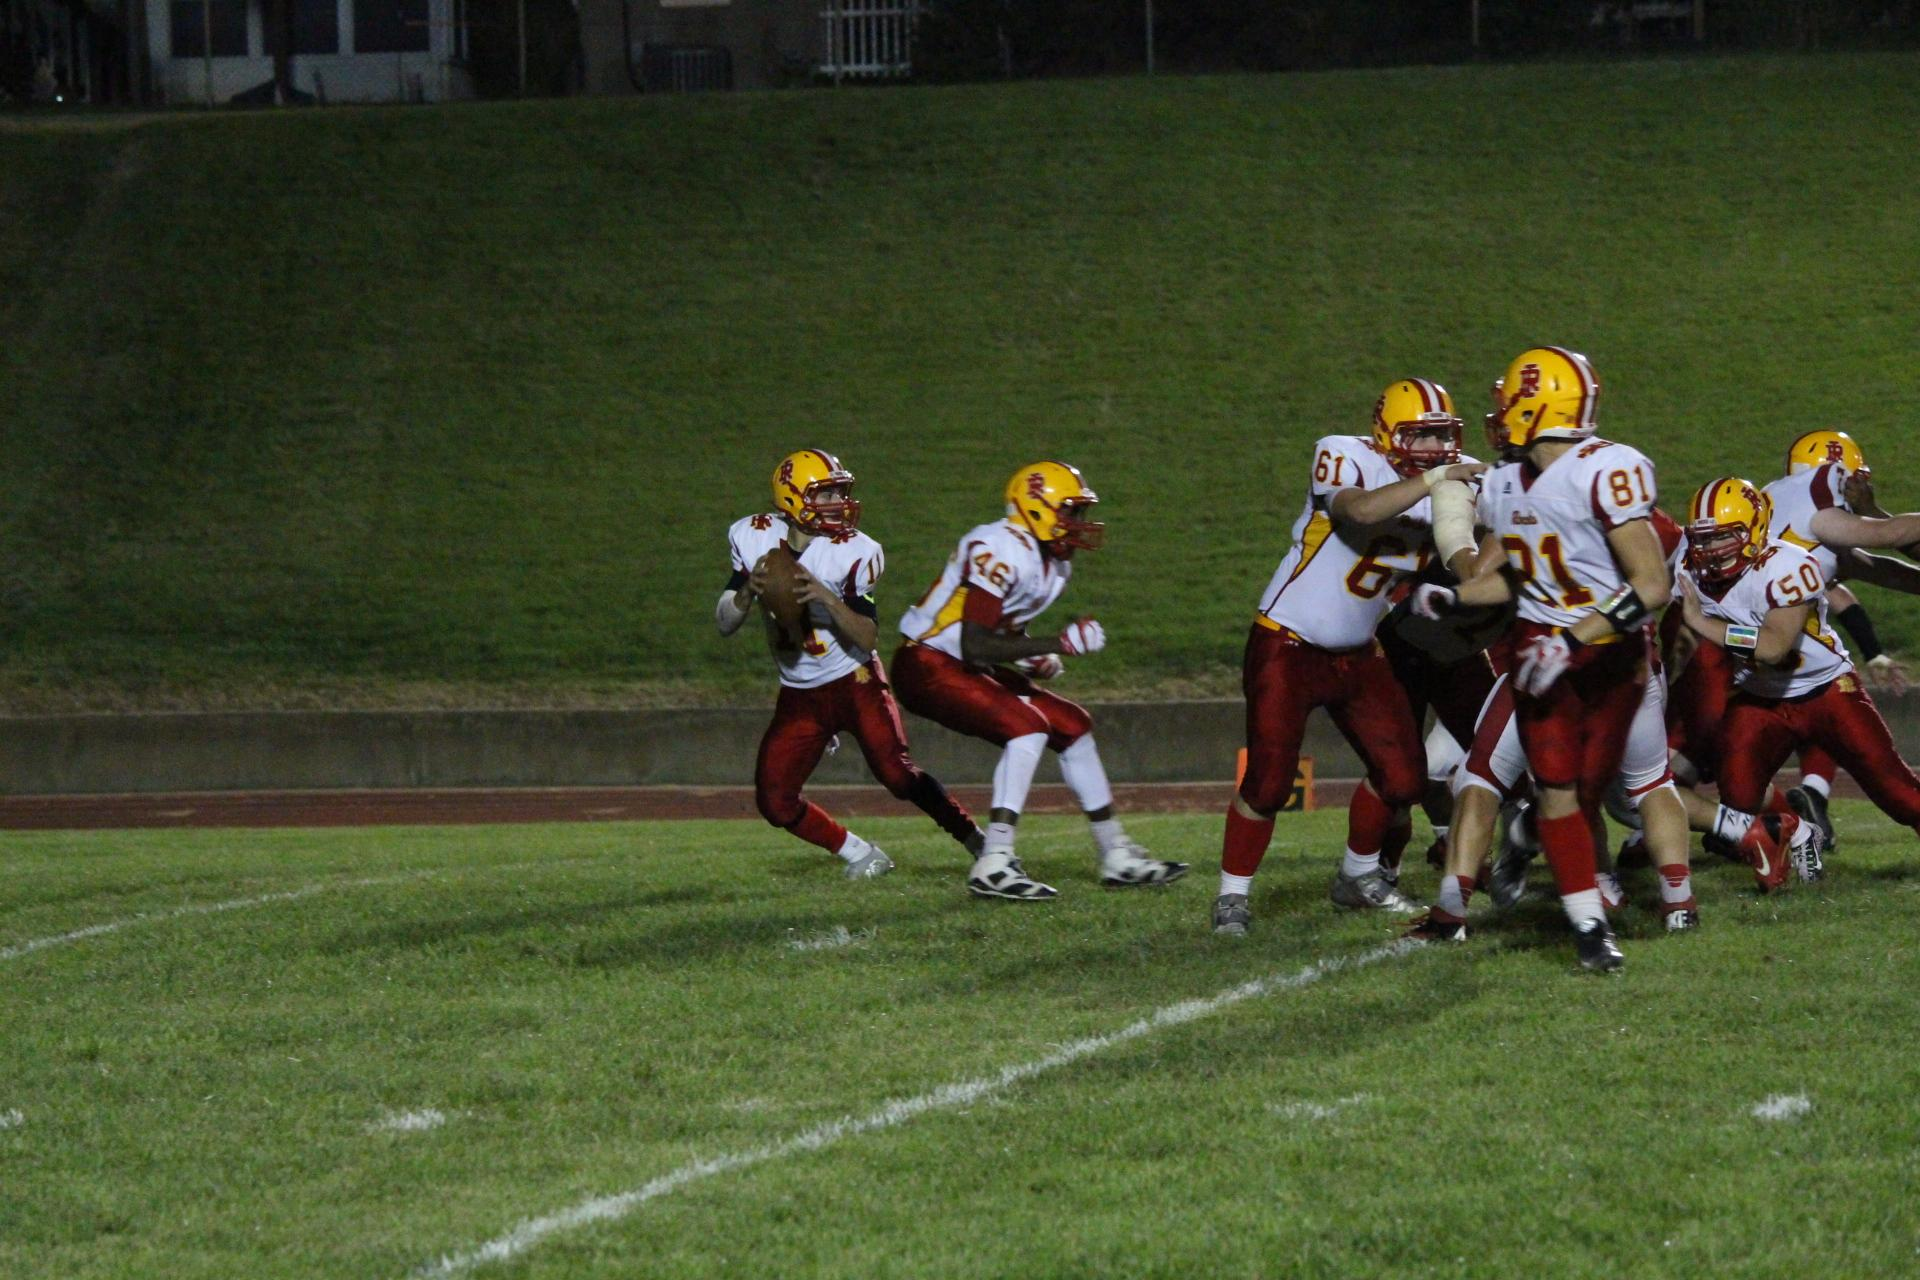 What Was The Score Of The Rock Island Football Game